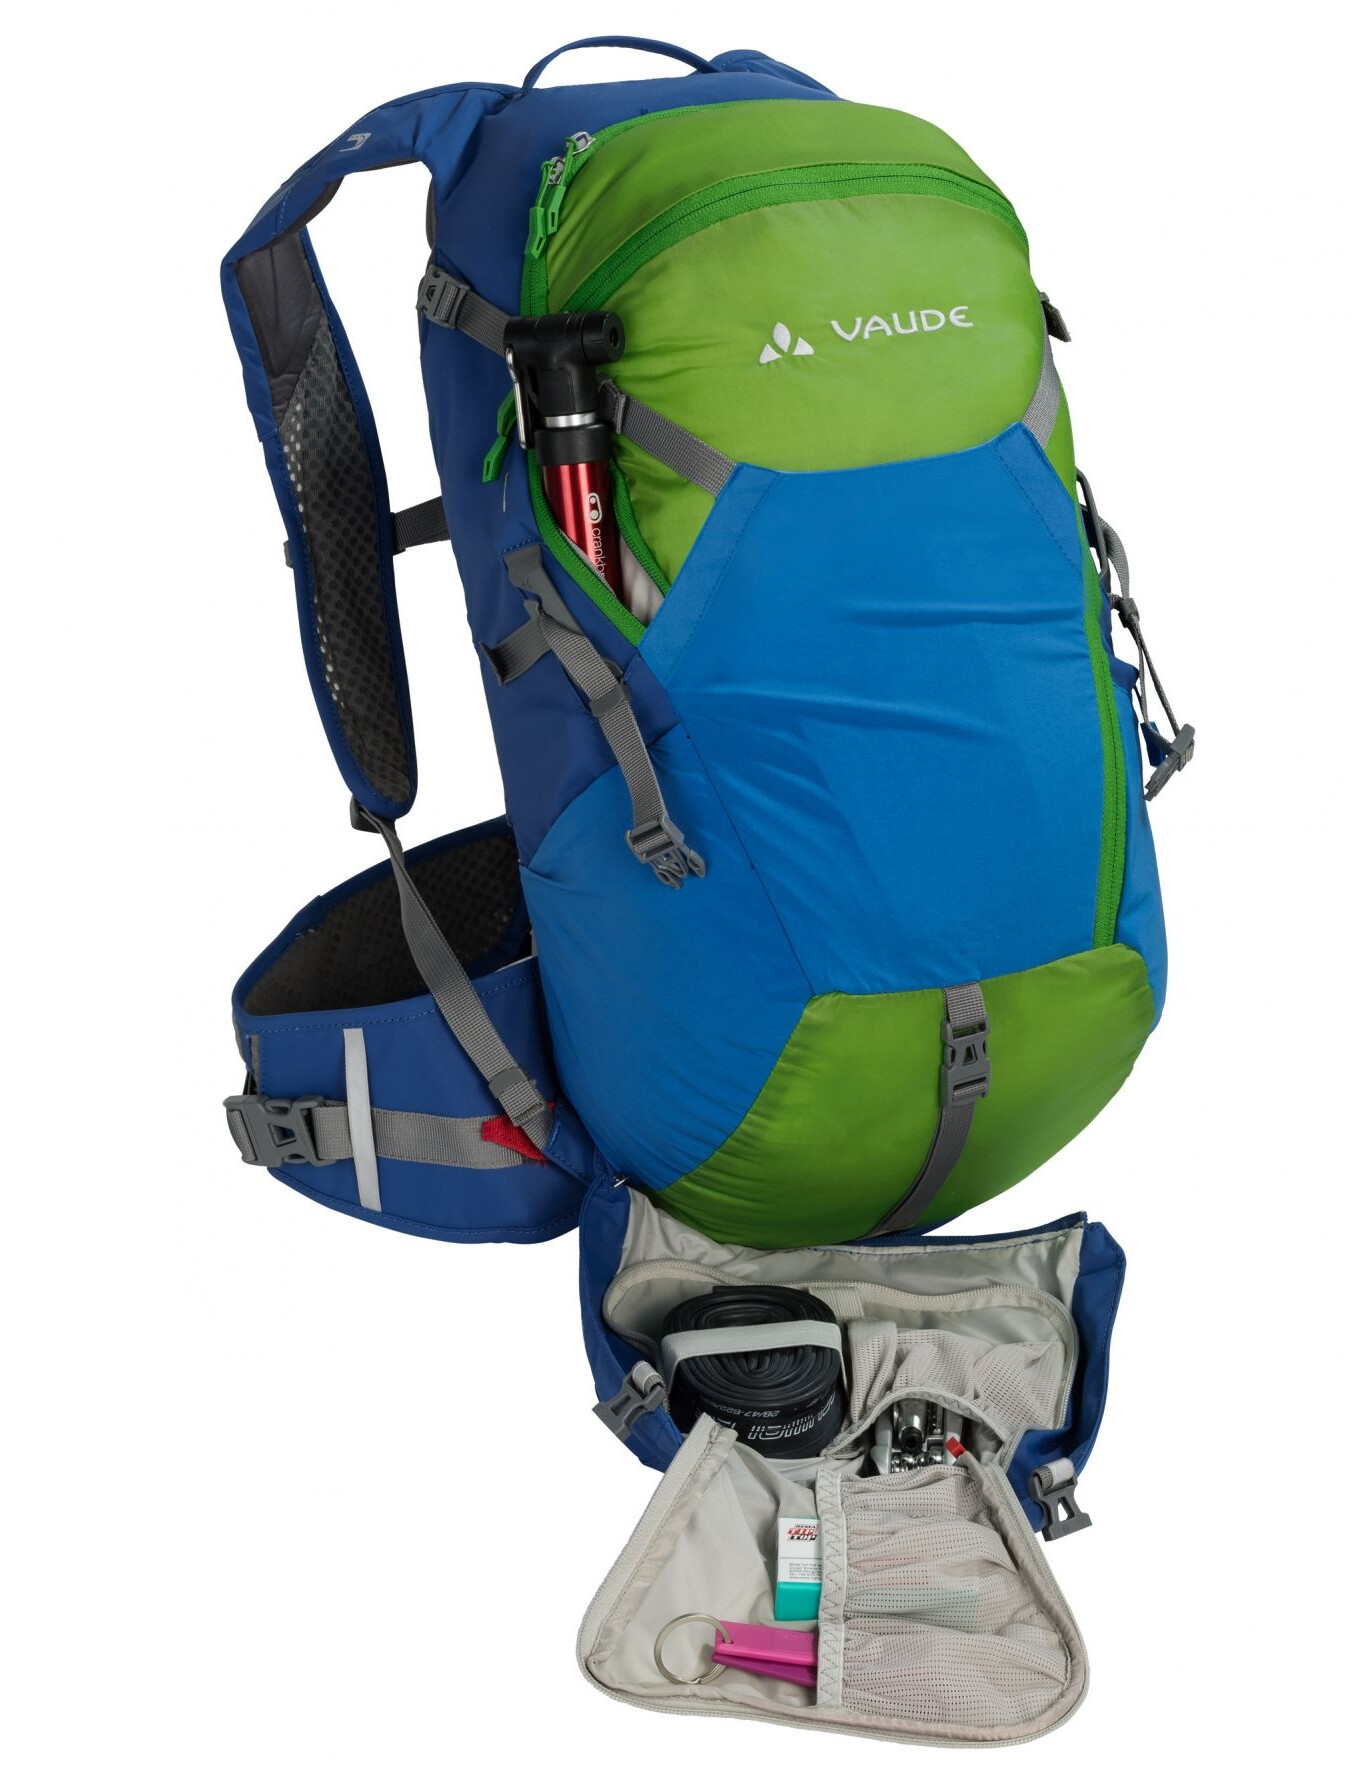 VAUDE Moab Pro 22 Backpack M green/blue at Addnature.co.uk